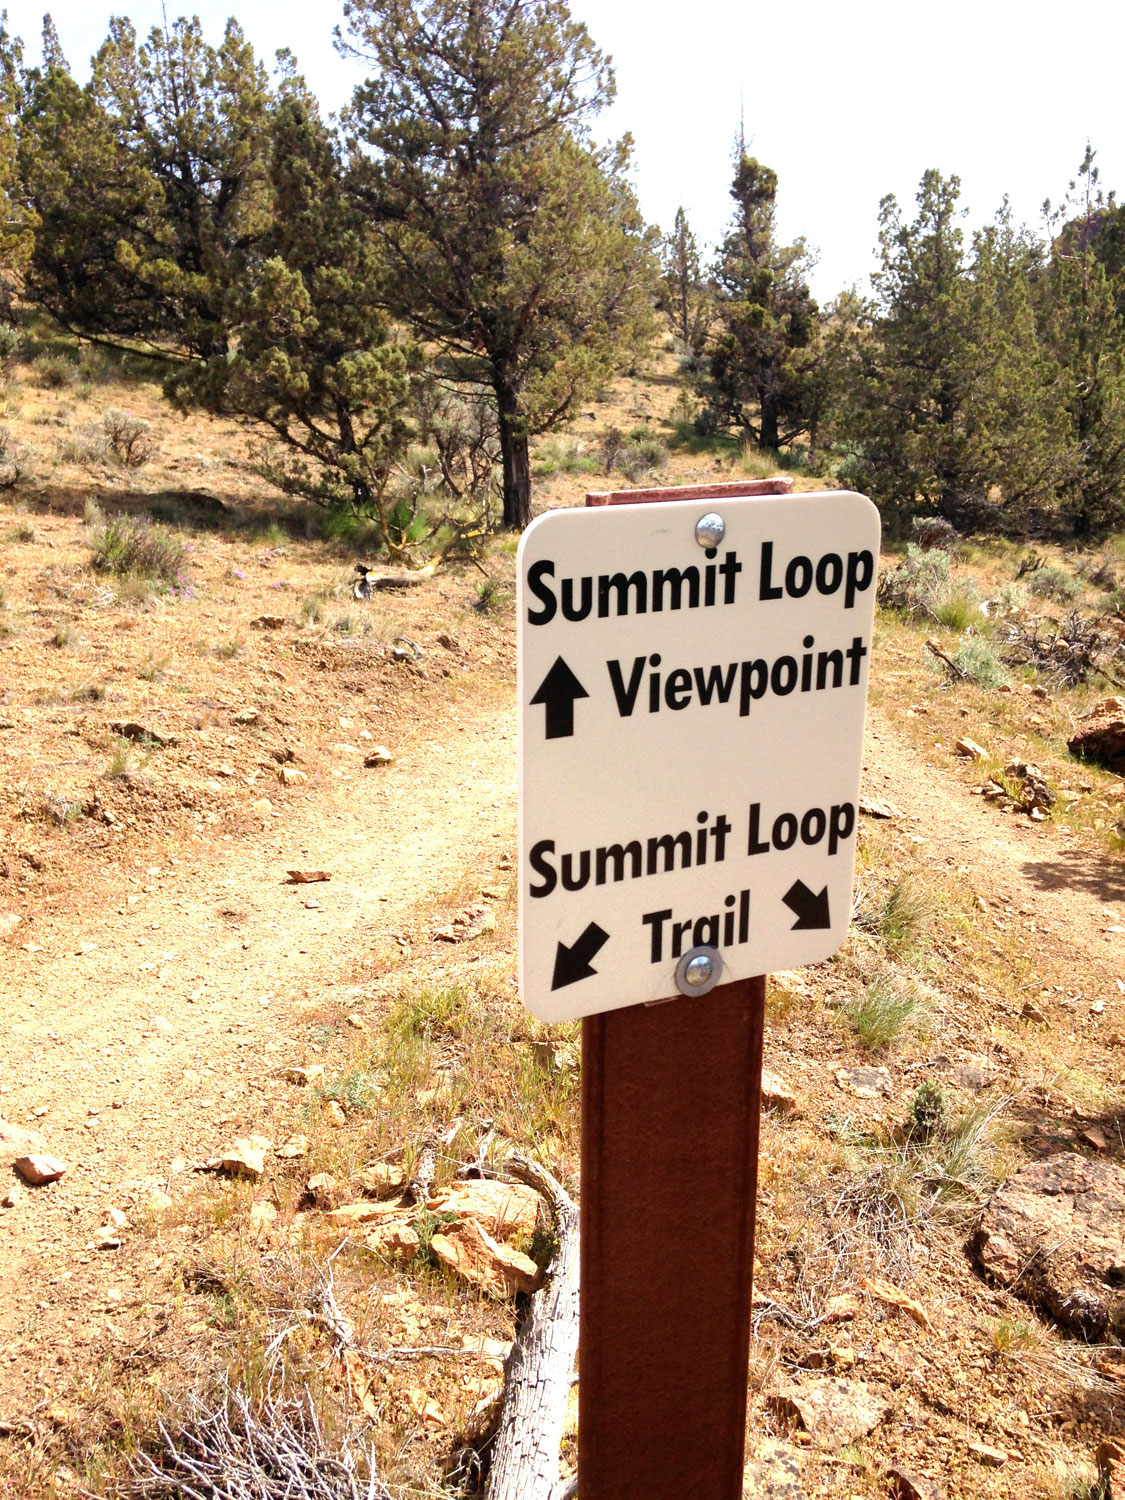 A quick detour to check out the viewpoint on the Summit Trail at Smith Rock State Park is definitely worth it.